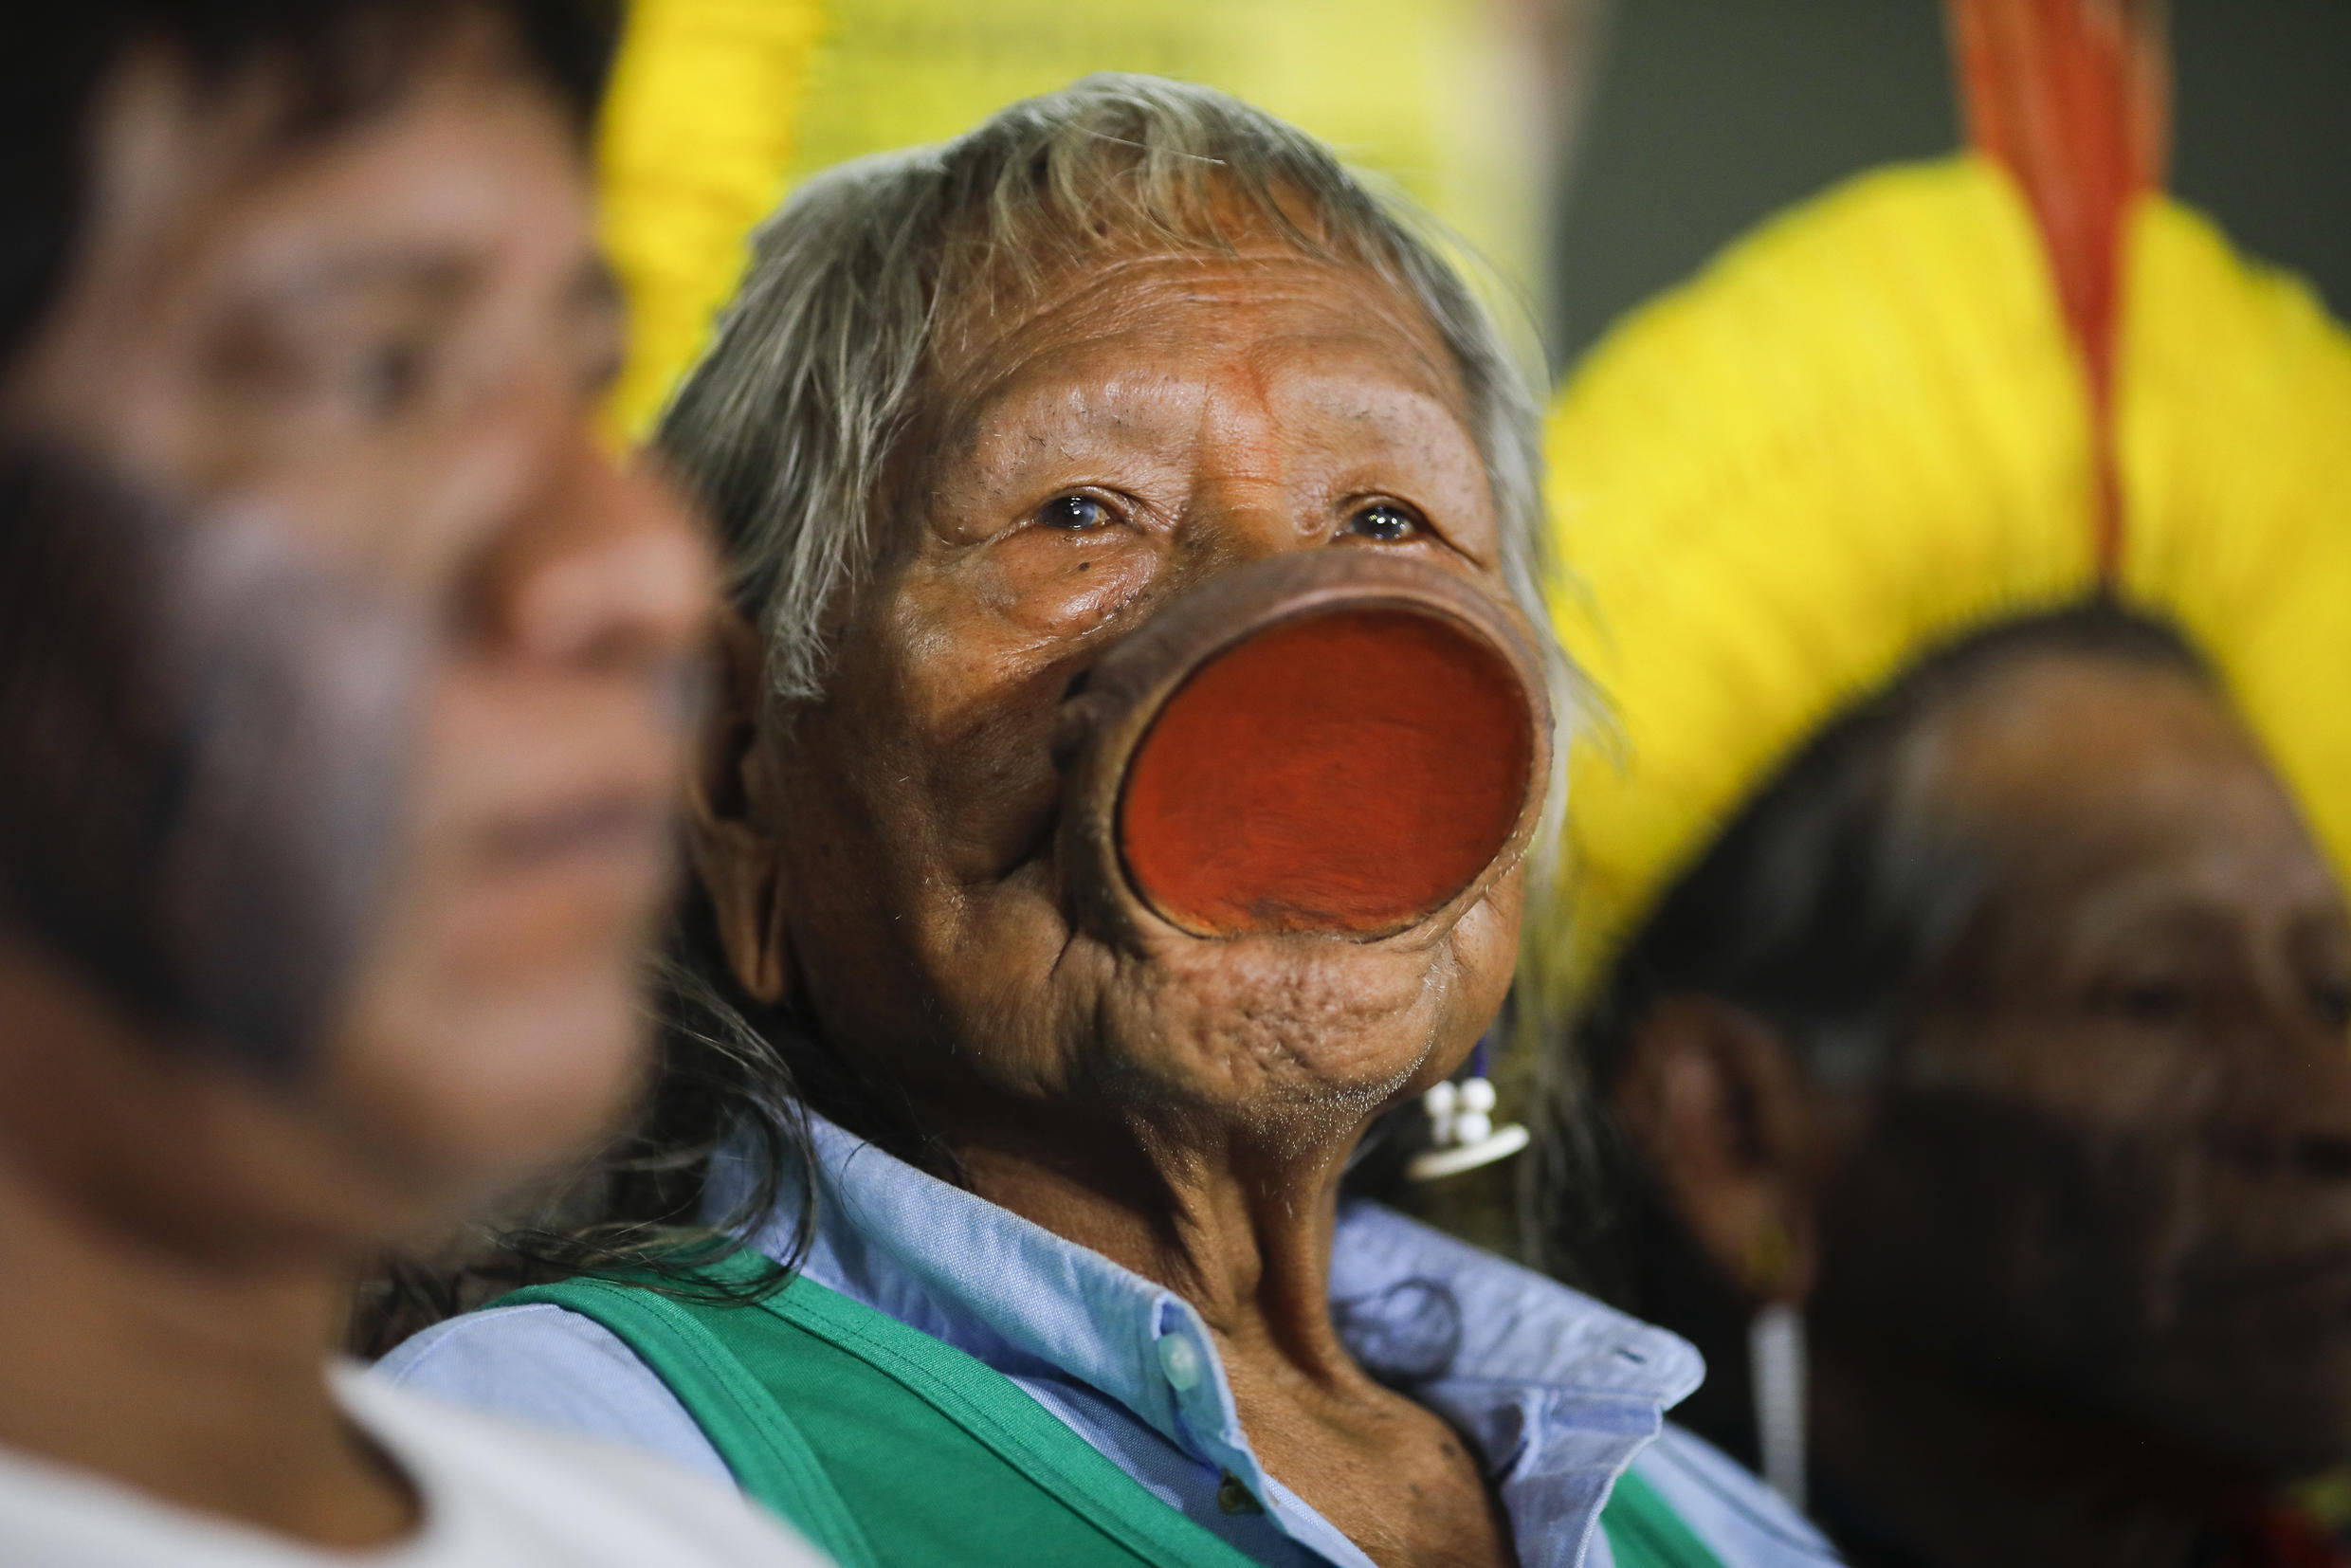 Brazil's indigenous chief Raoni Metuktire (C) speaks with journalists at the chamber of deputies, in Brasilia, on February 18, 2020.